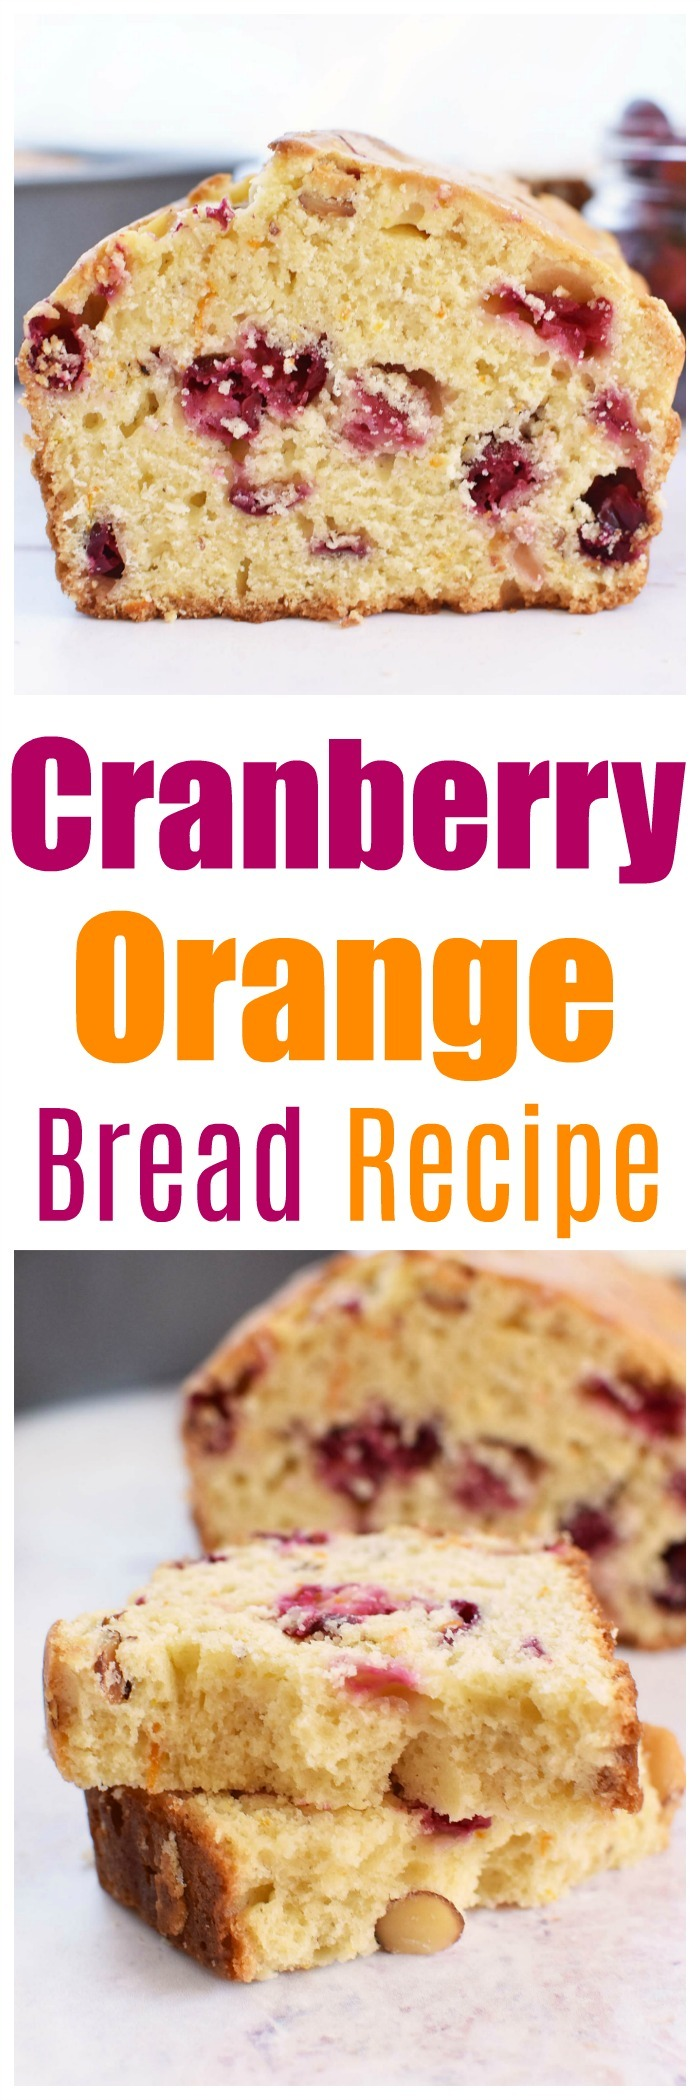 Cranberry Orange Bread Loaf Recipe